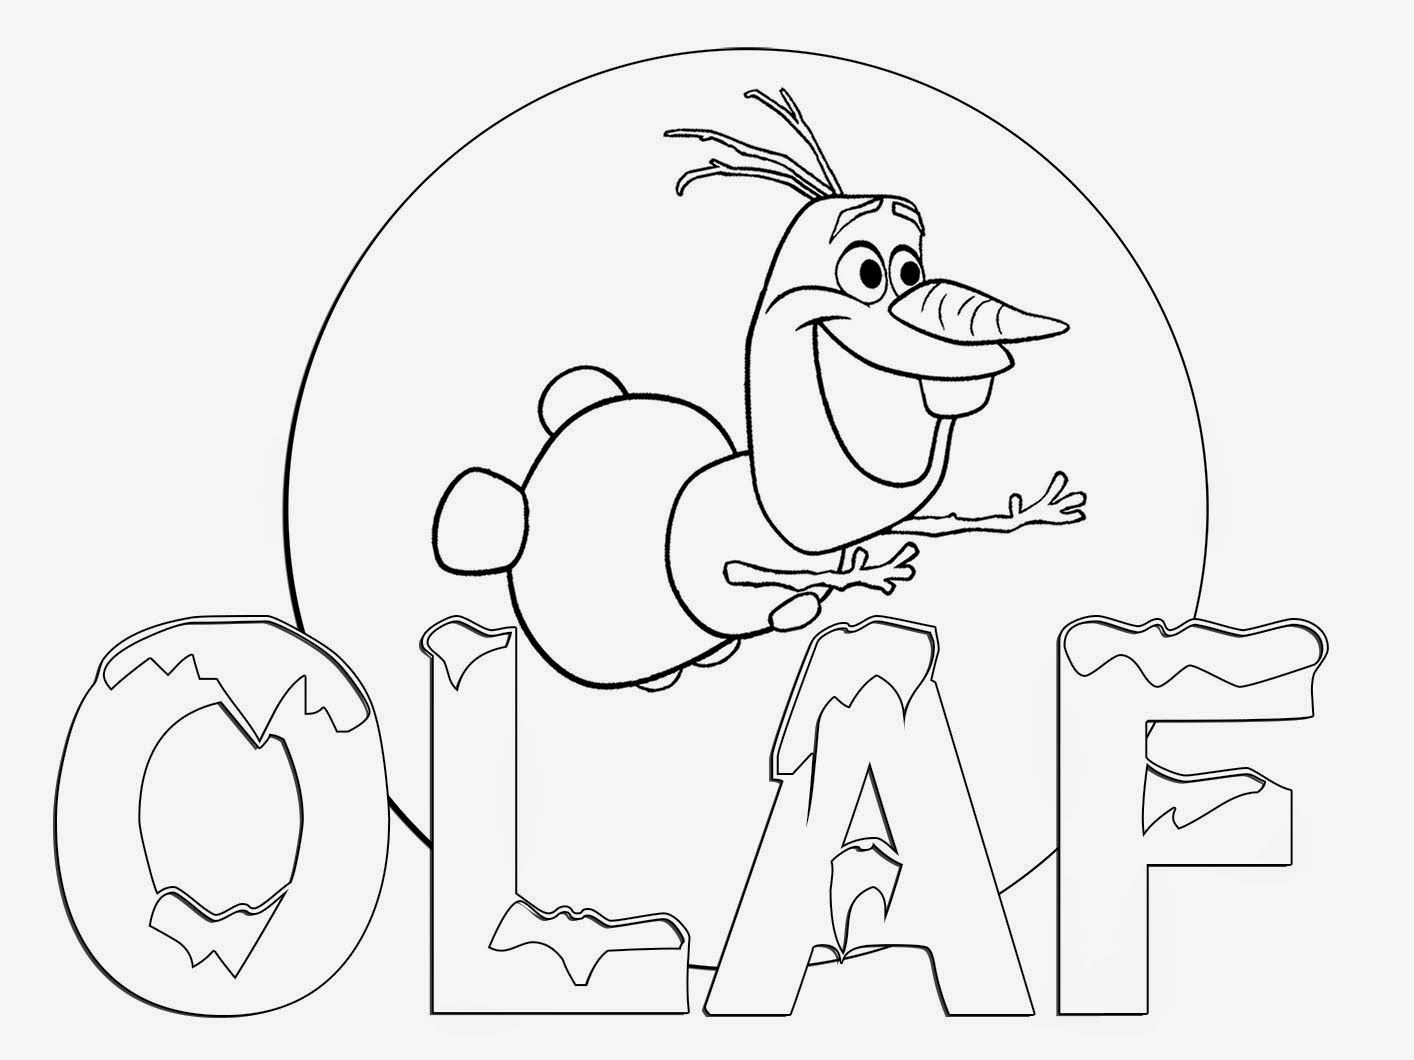 Printable Disney Cartoon Olaf flying | Coloring Pages PDF